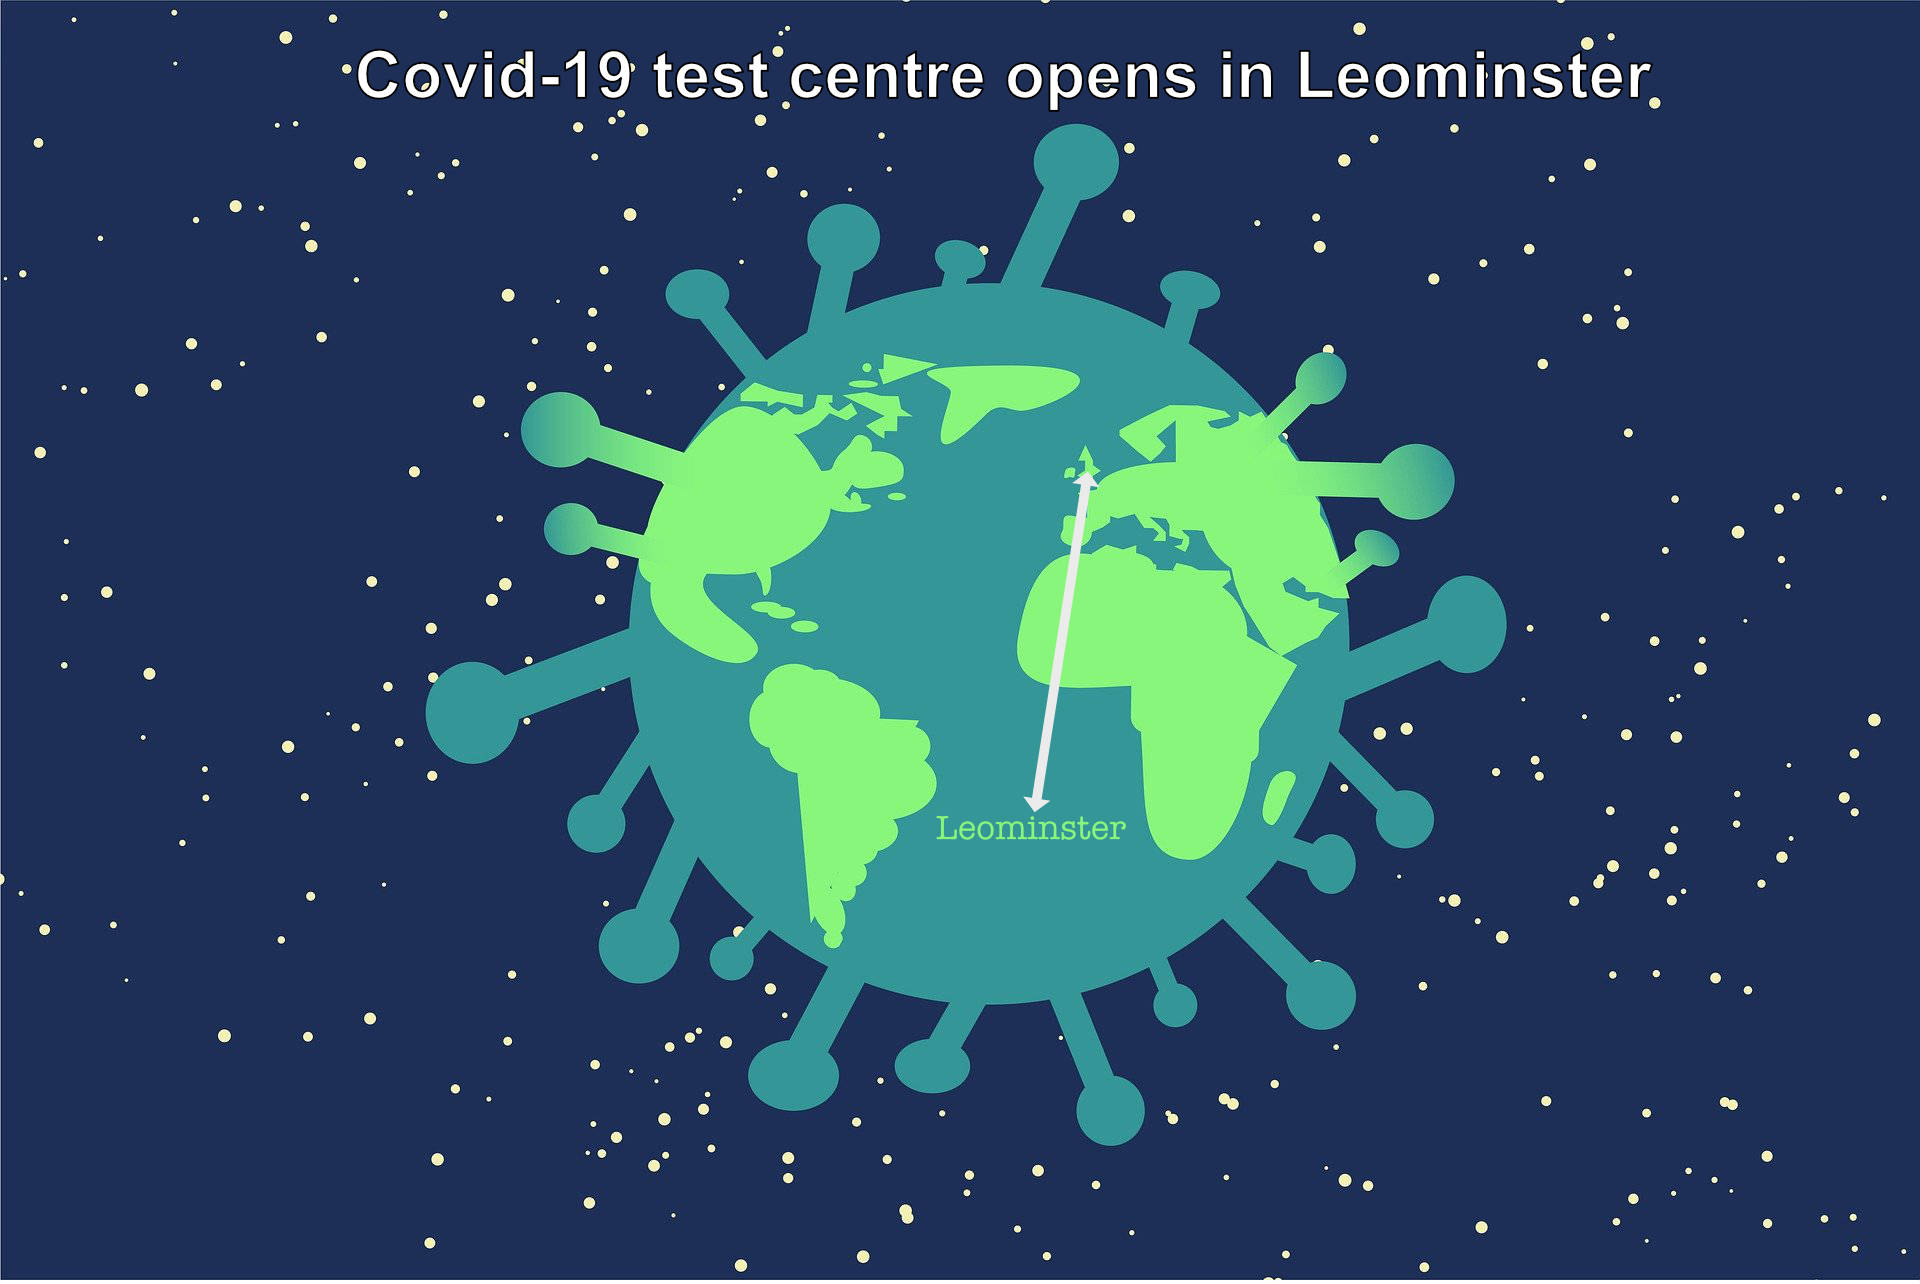 Covid-19 test centre opens in Leominster